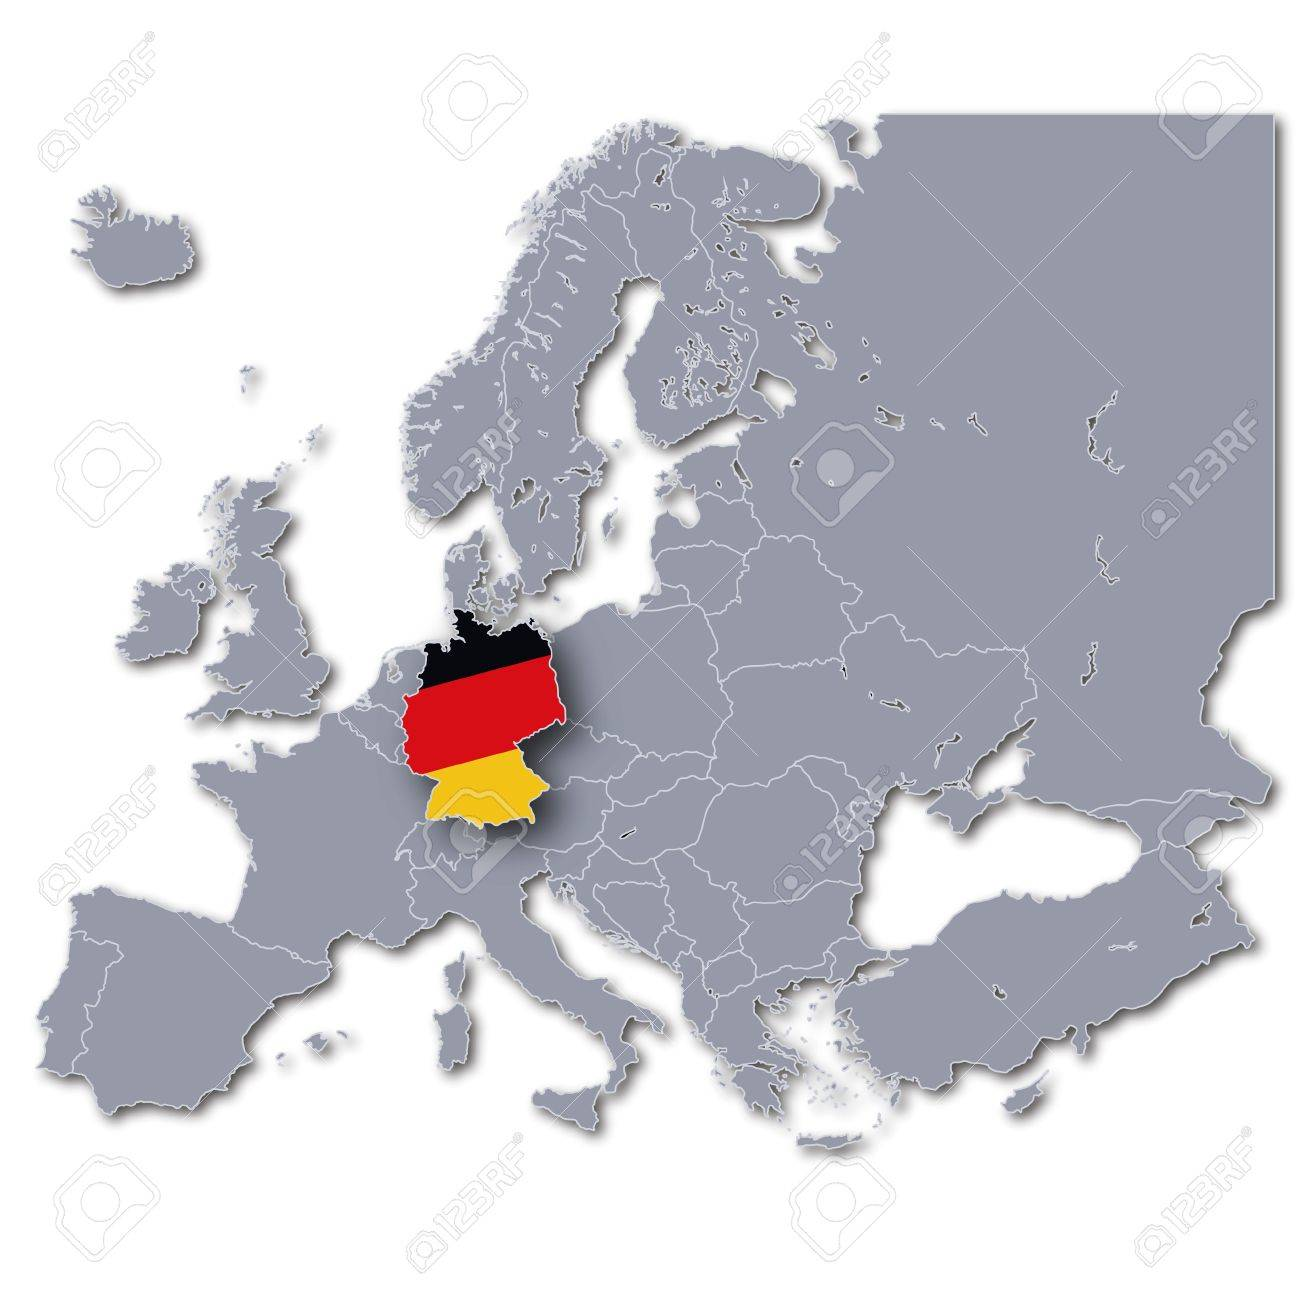 Europe Map Germany Photo Picture And Royalty Free Image – Germany in Europe Map